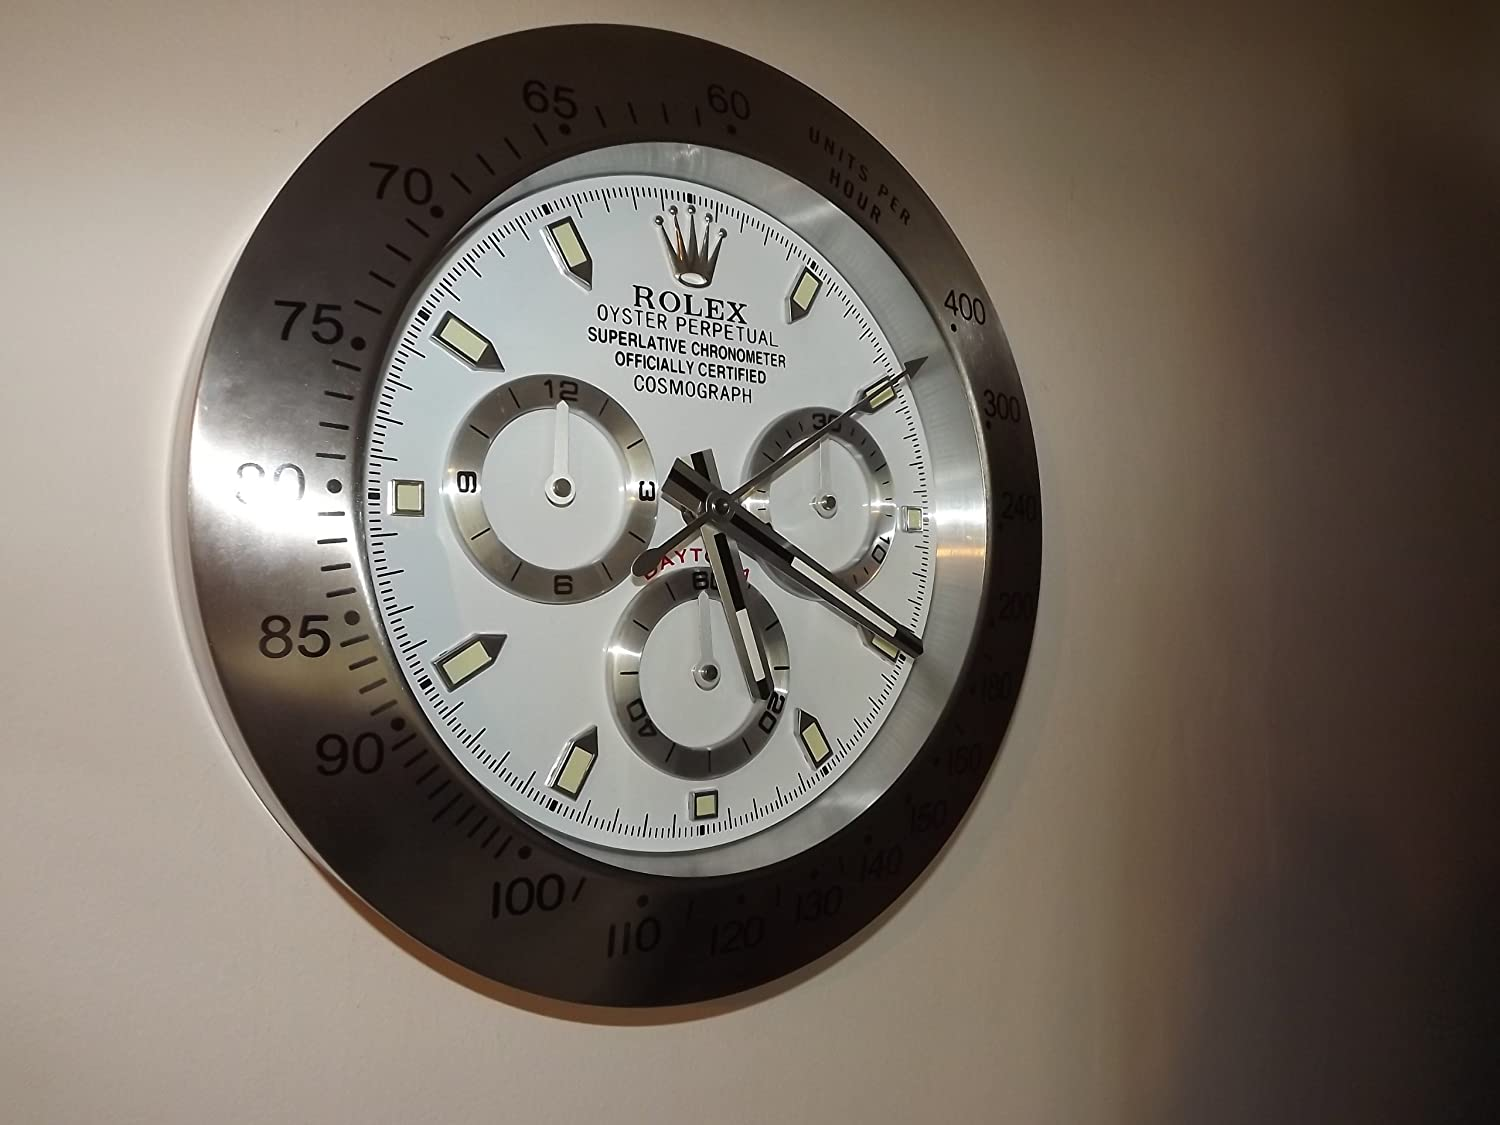 Rolex Daytona dealer display wall clock Amazoncouk Office Products